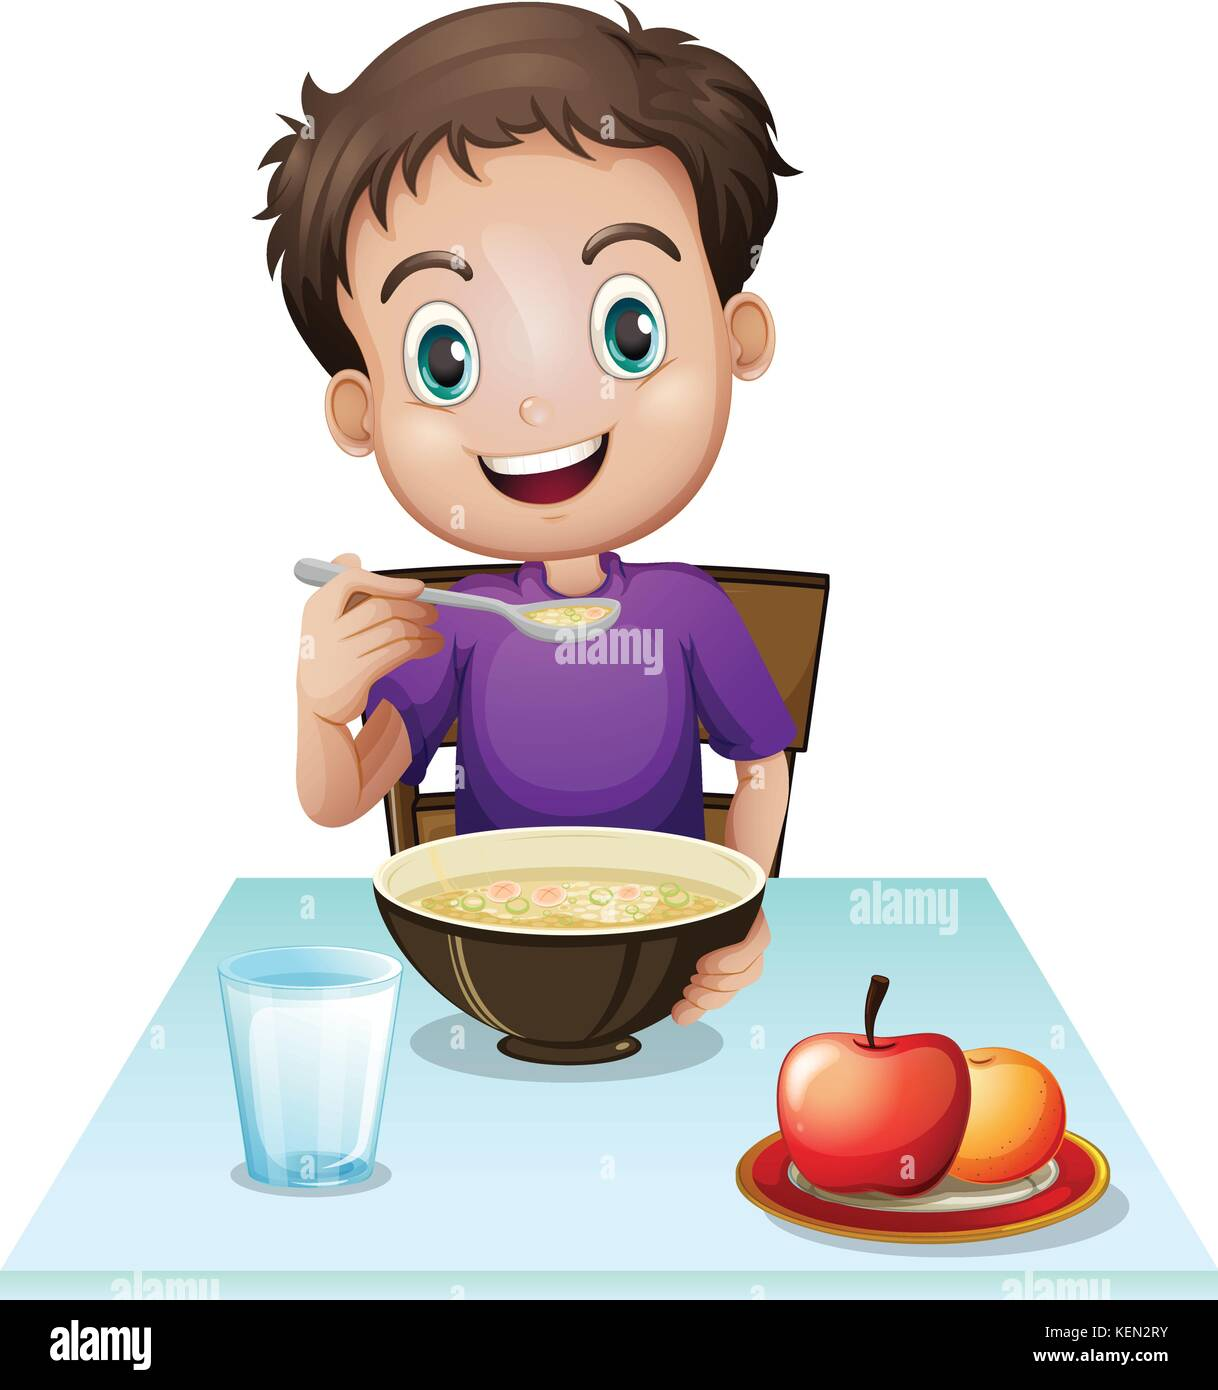 Illustration Of A Boy Eating His Breakfast At The Table On